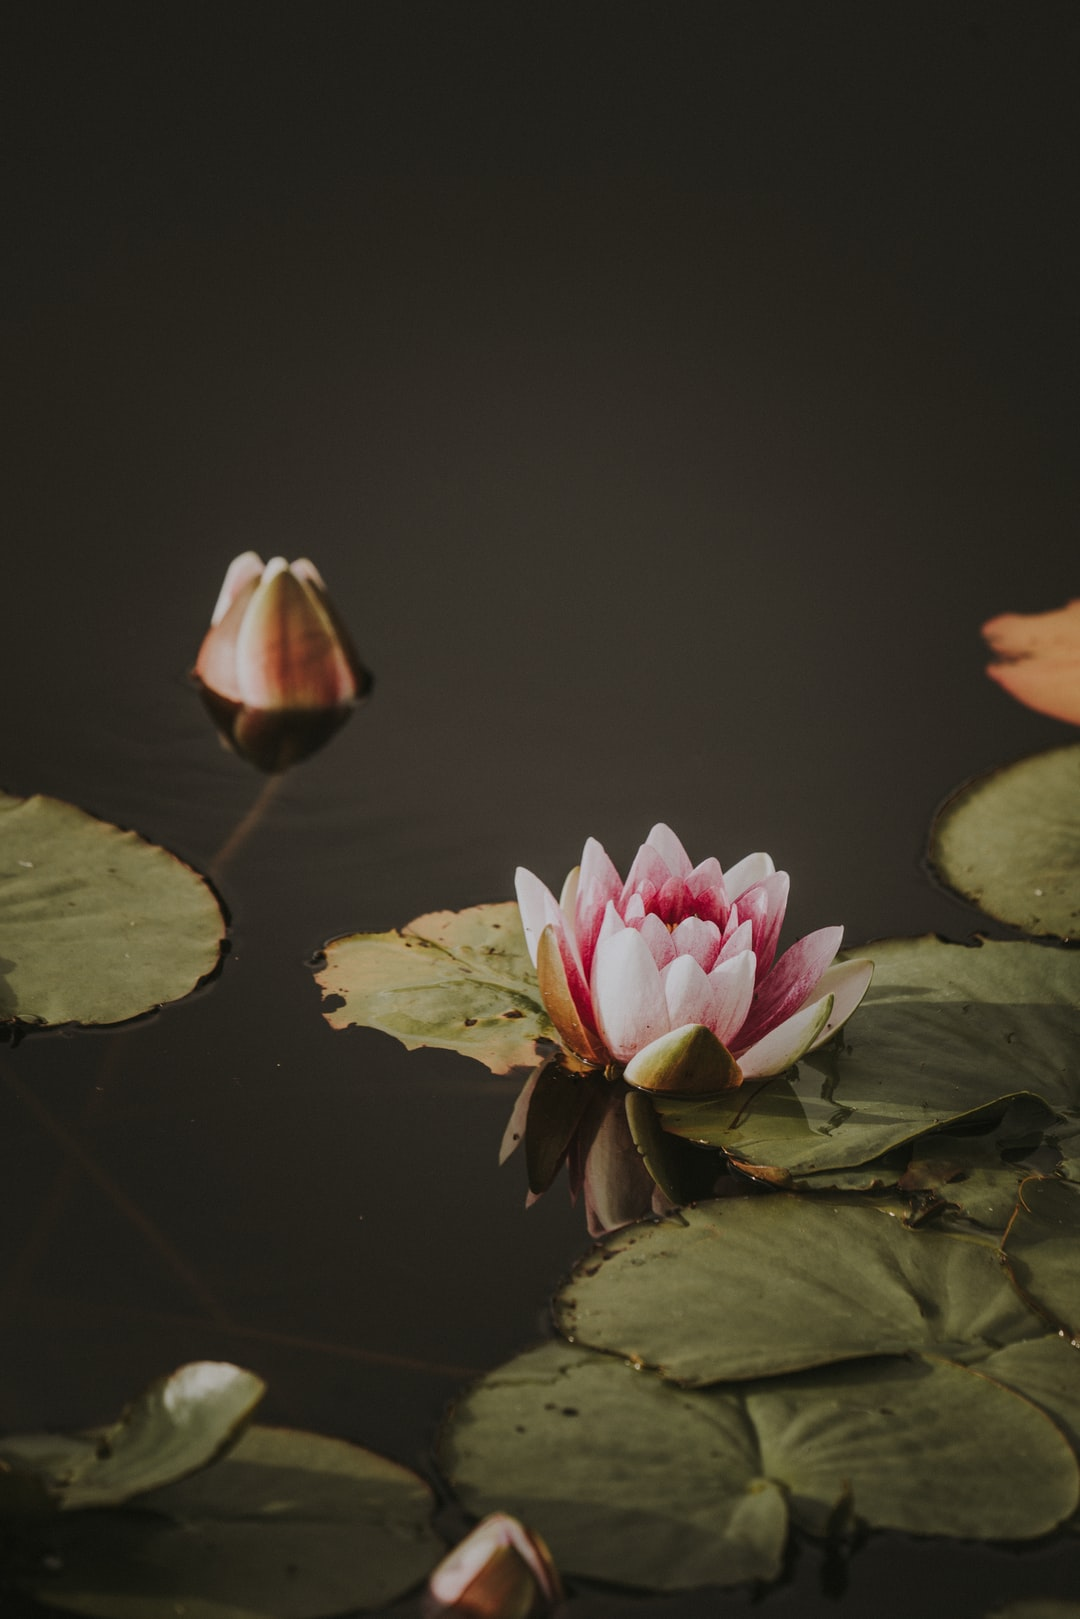 500 water lily pictures download free images on unsplash izmirmasajfo